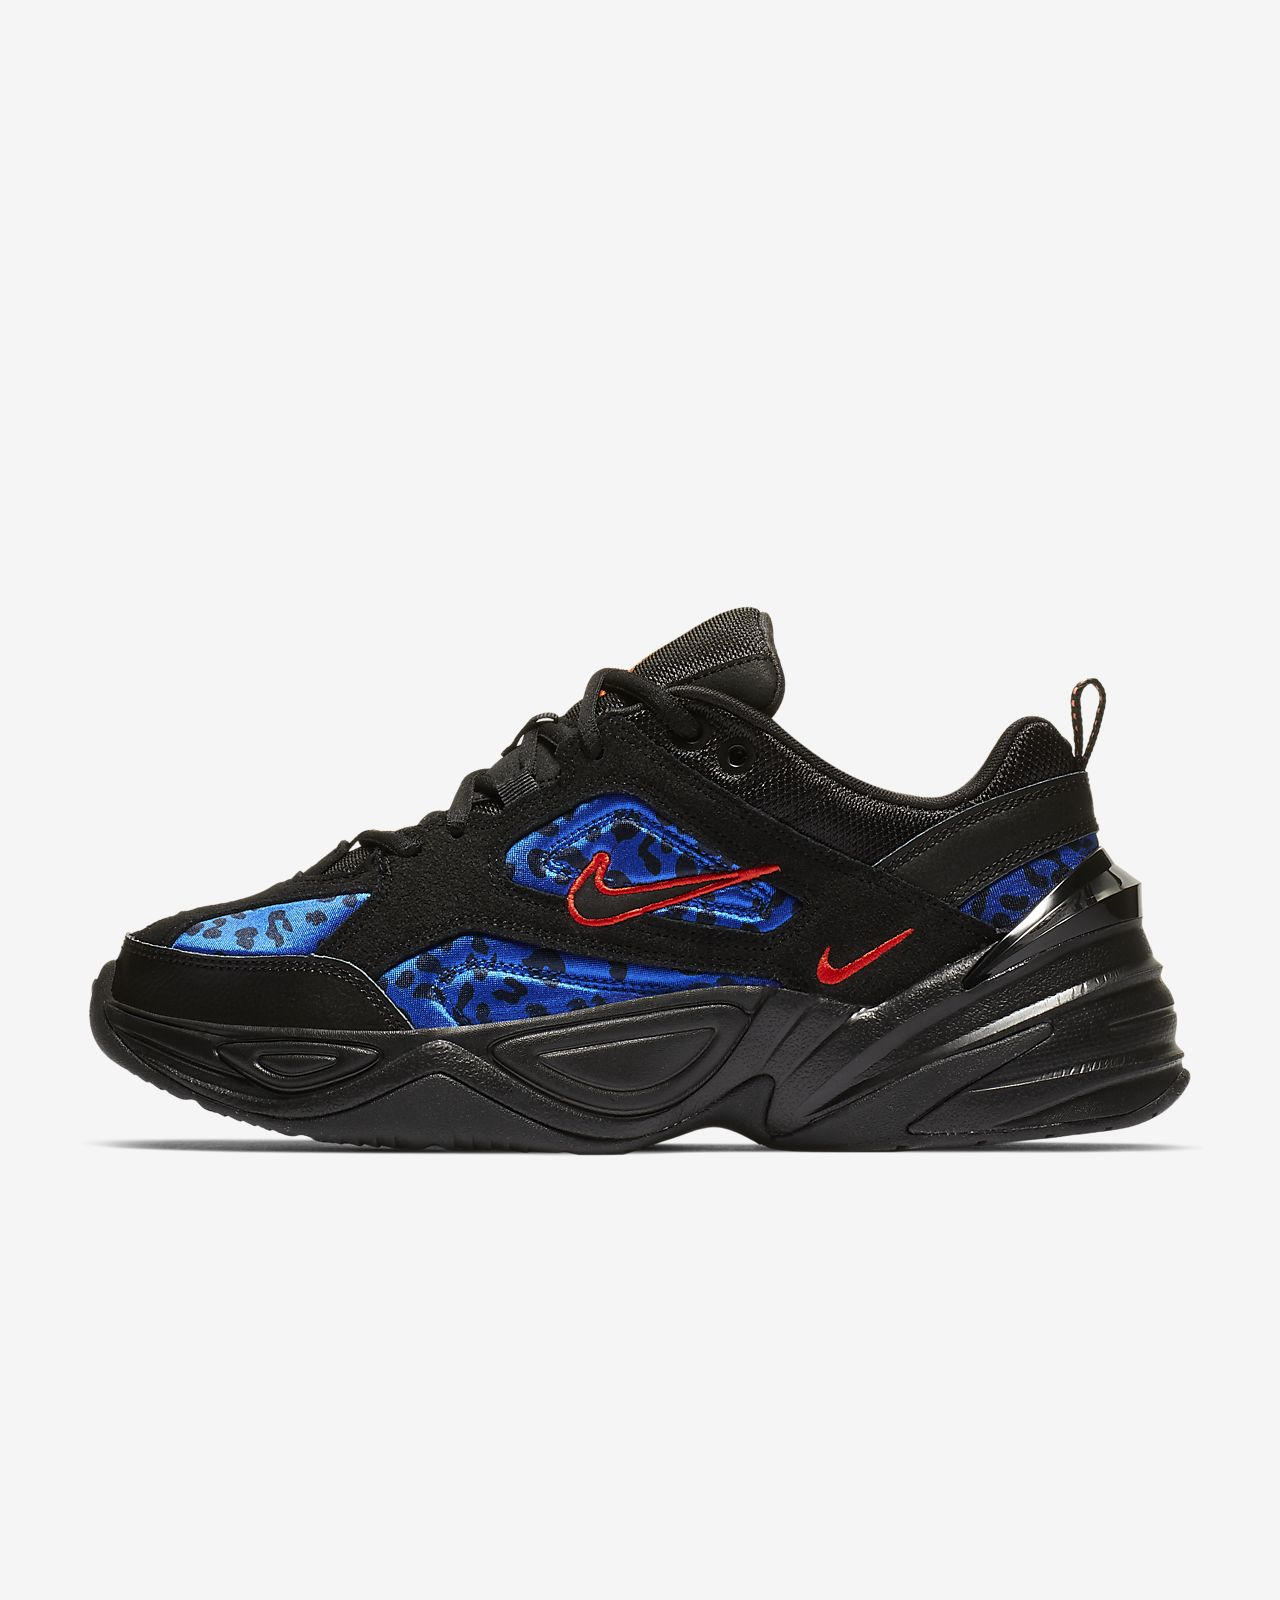 low priced 87b9f eb881 ... Chaussure Nike M2K Tekno Animal pour Femme